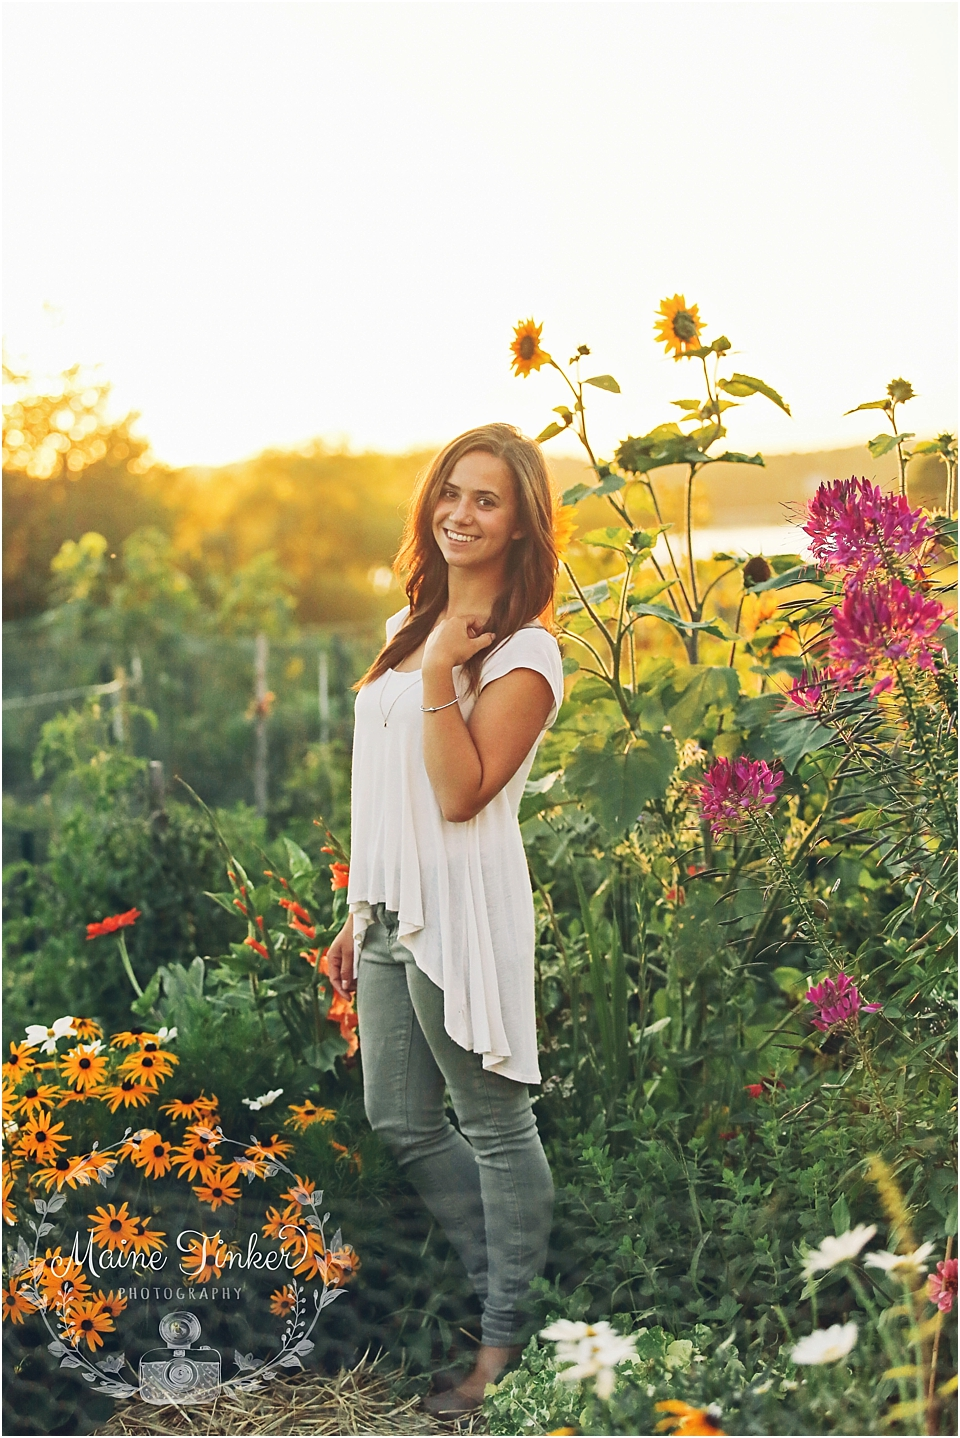 Senior girl posing in a flower field at sunset and golden hour